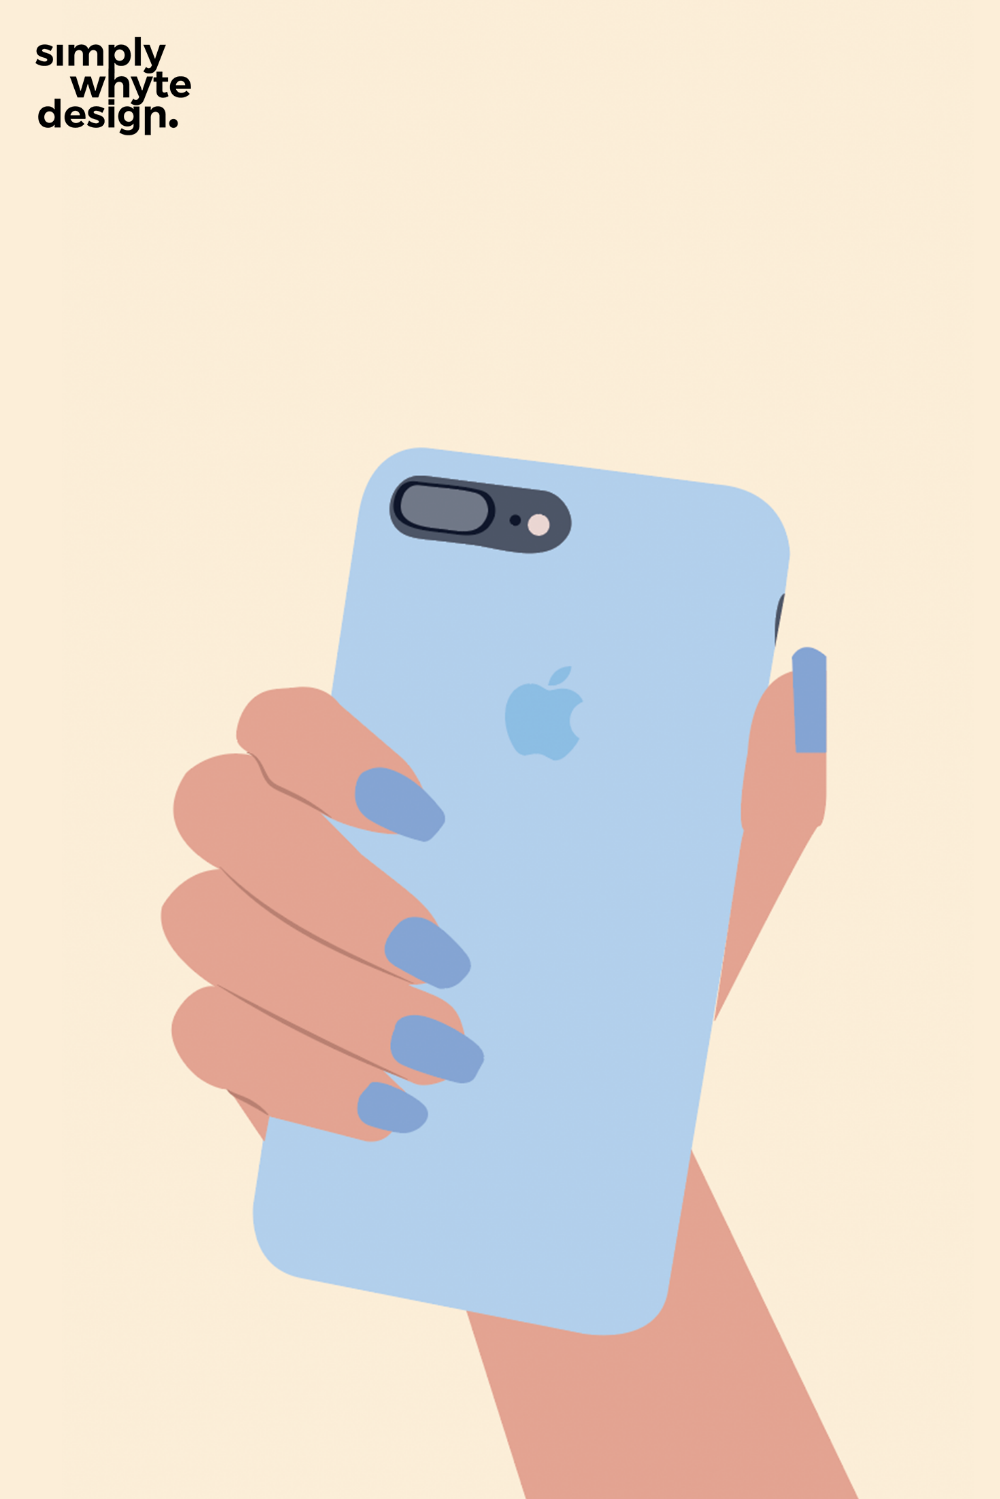 Woman hand holding apple iphone illustration in 2020